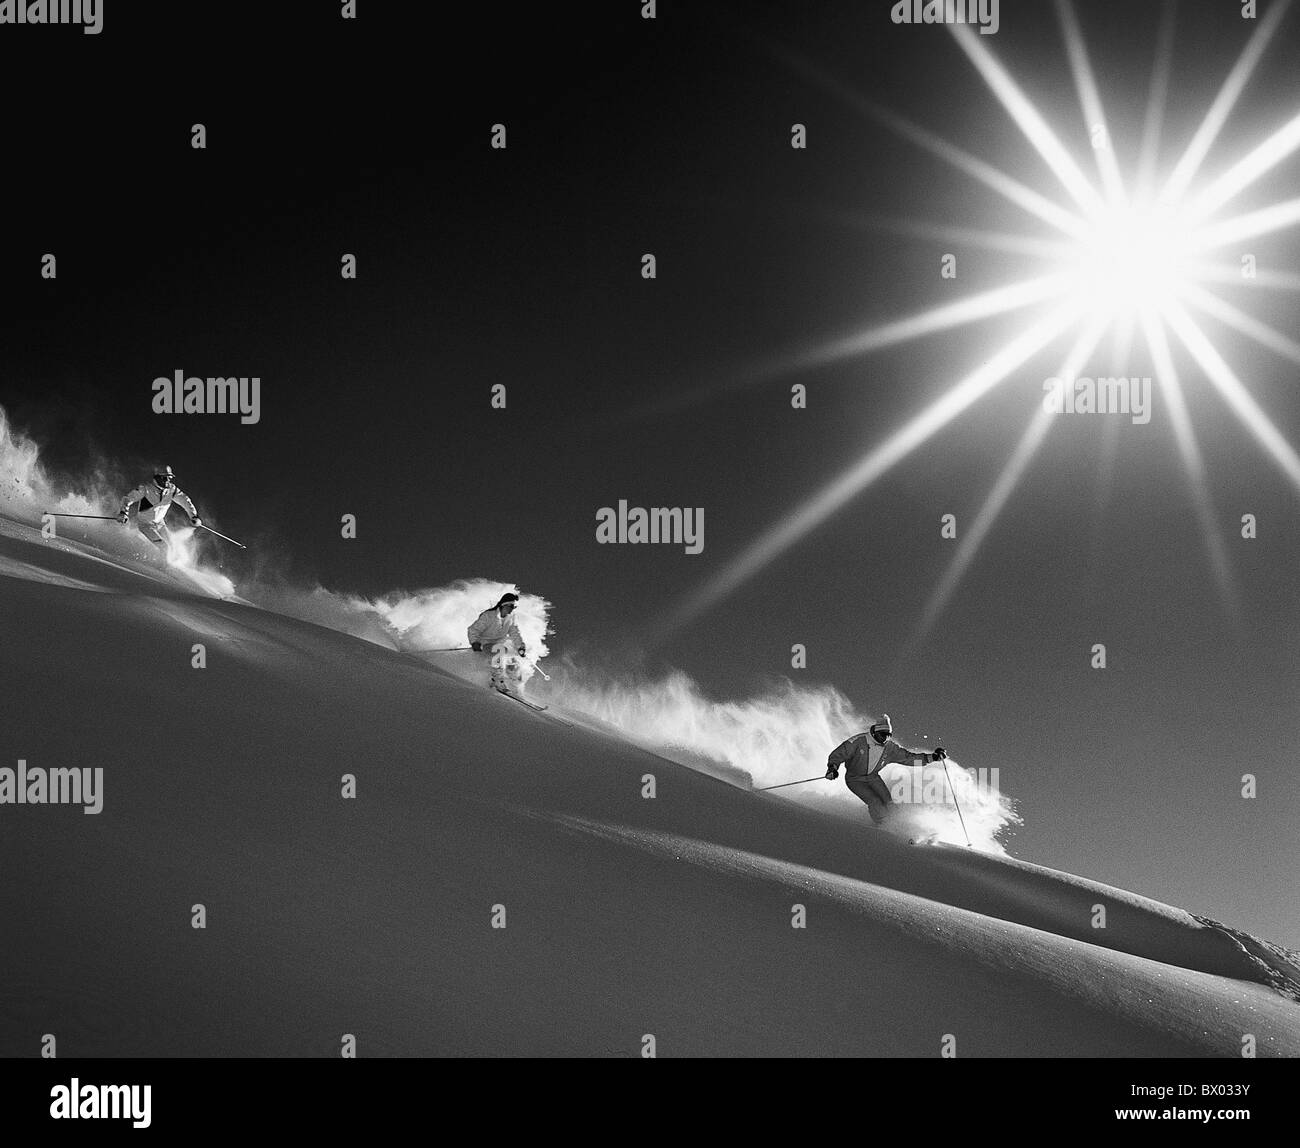 mountains Carving ski group monochrome snow black and white ski skiing sun sport deep snow deep snow dri - Stock Image